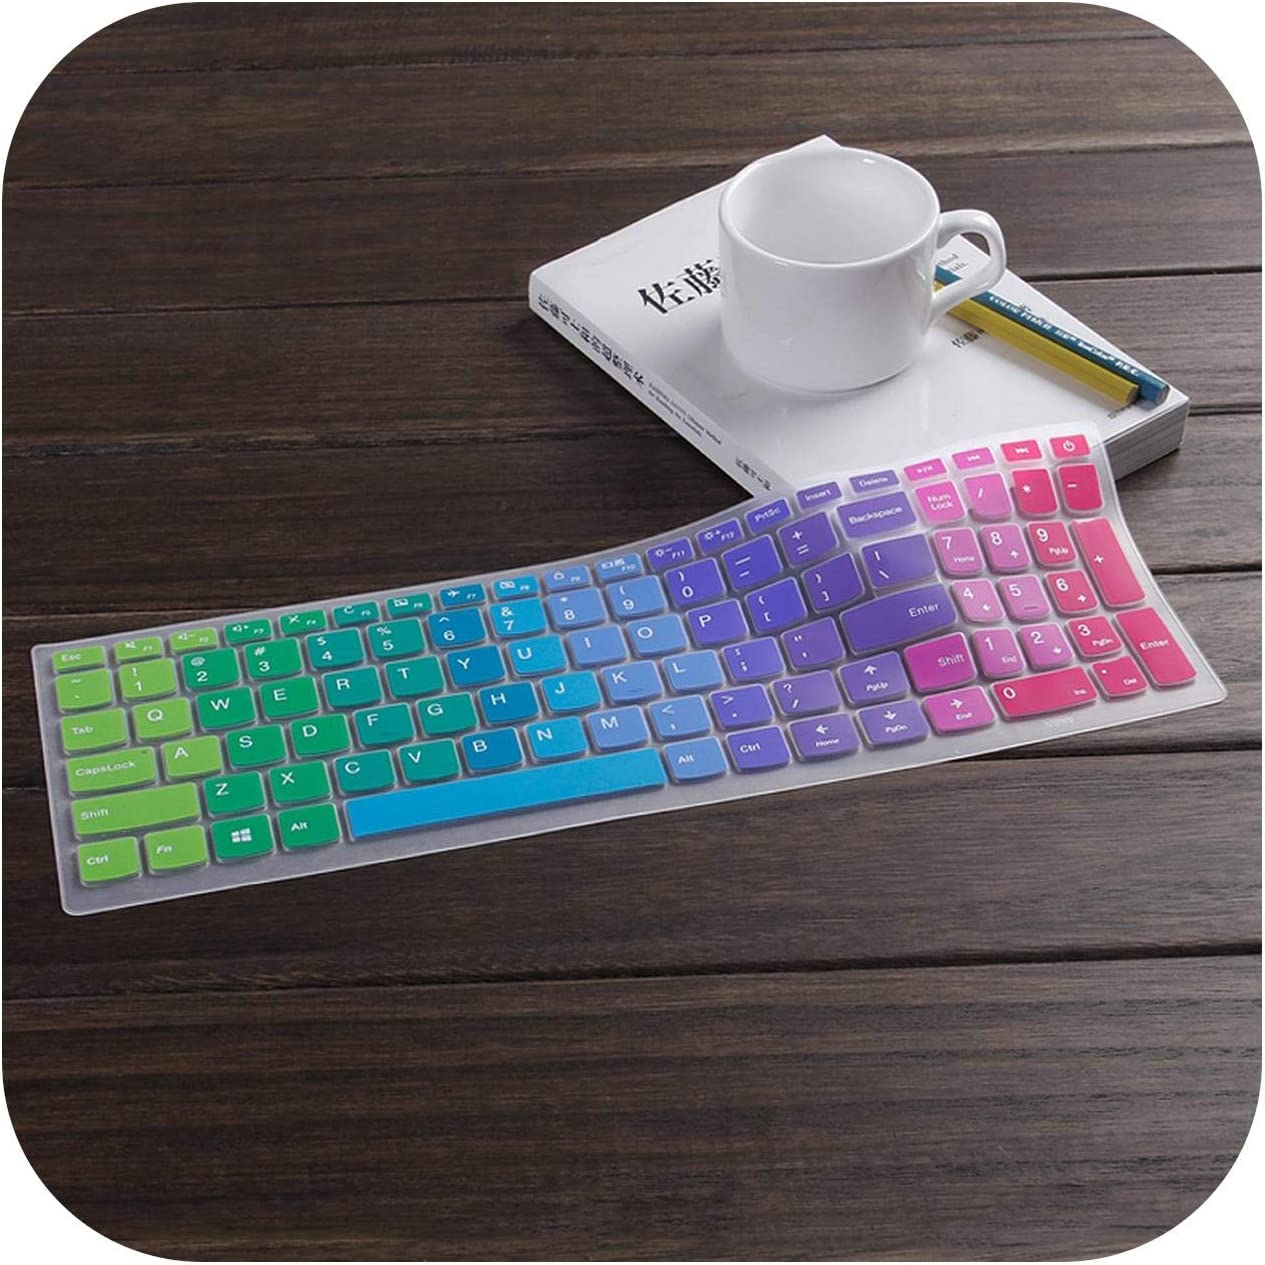 2020 Laptop Keyboard Protector for Lenovo Ideapad 310 15//510 15//110 15 17 Laptop New 15 Inch Notebook Keyboard Cover Protector Purple